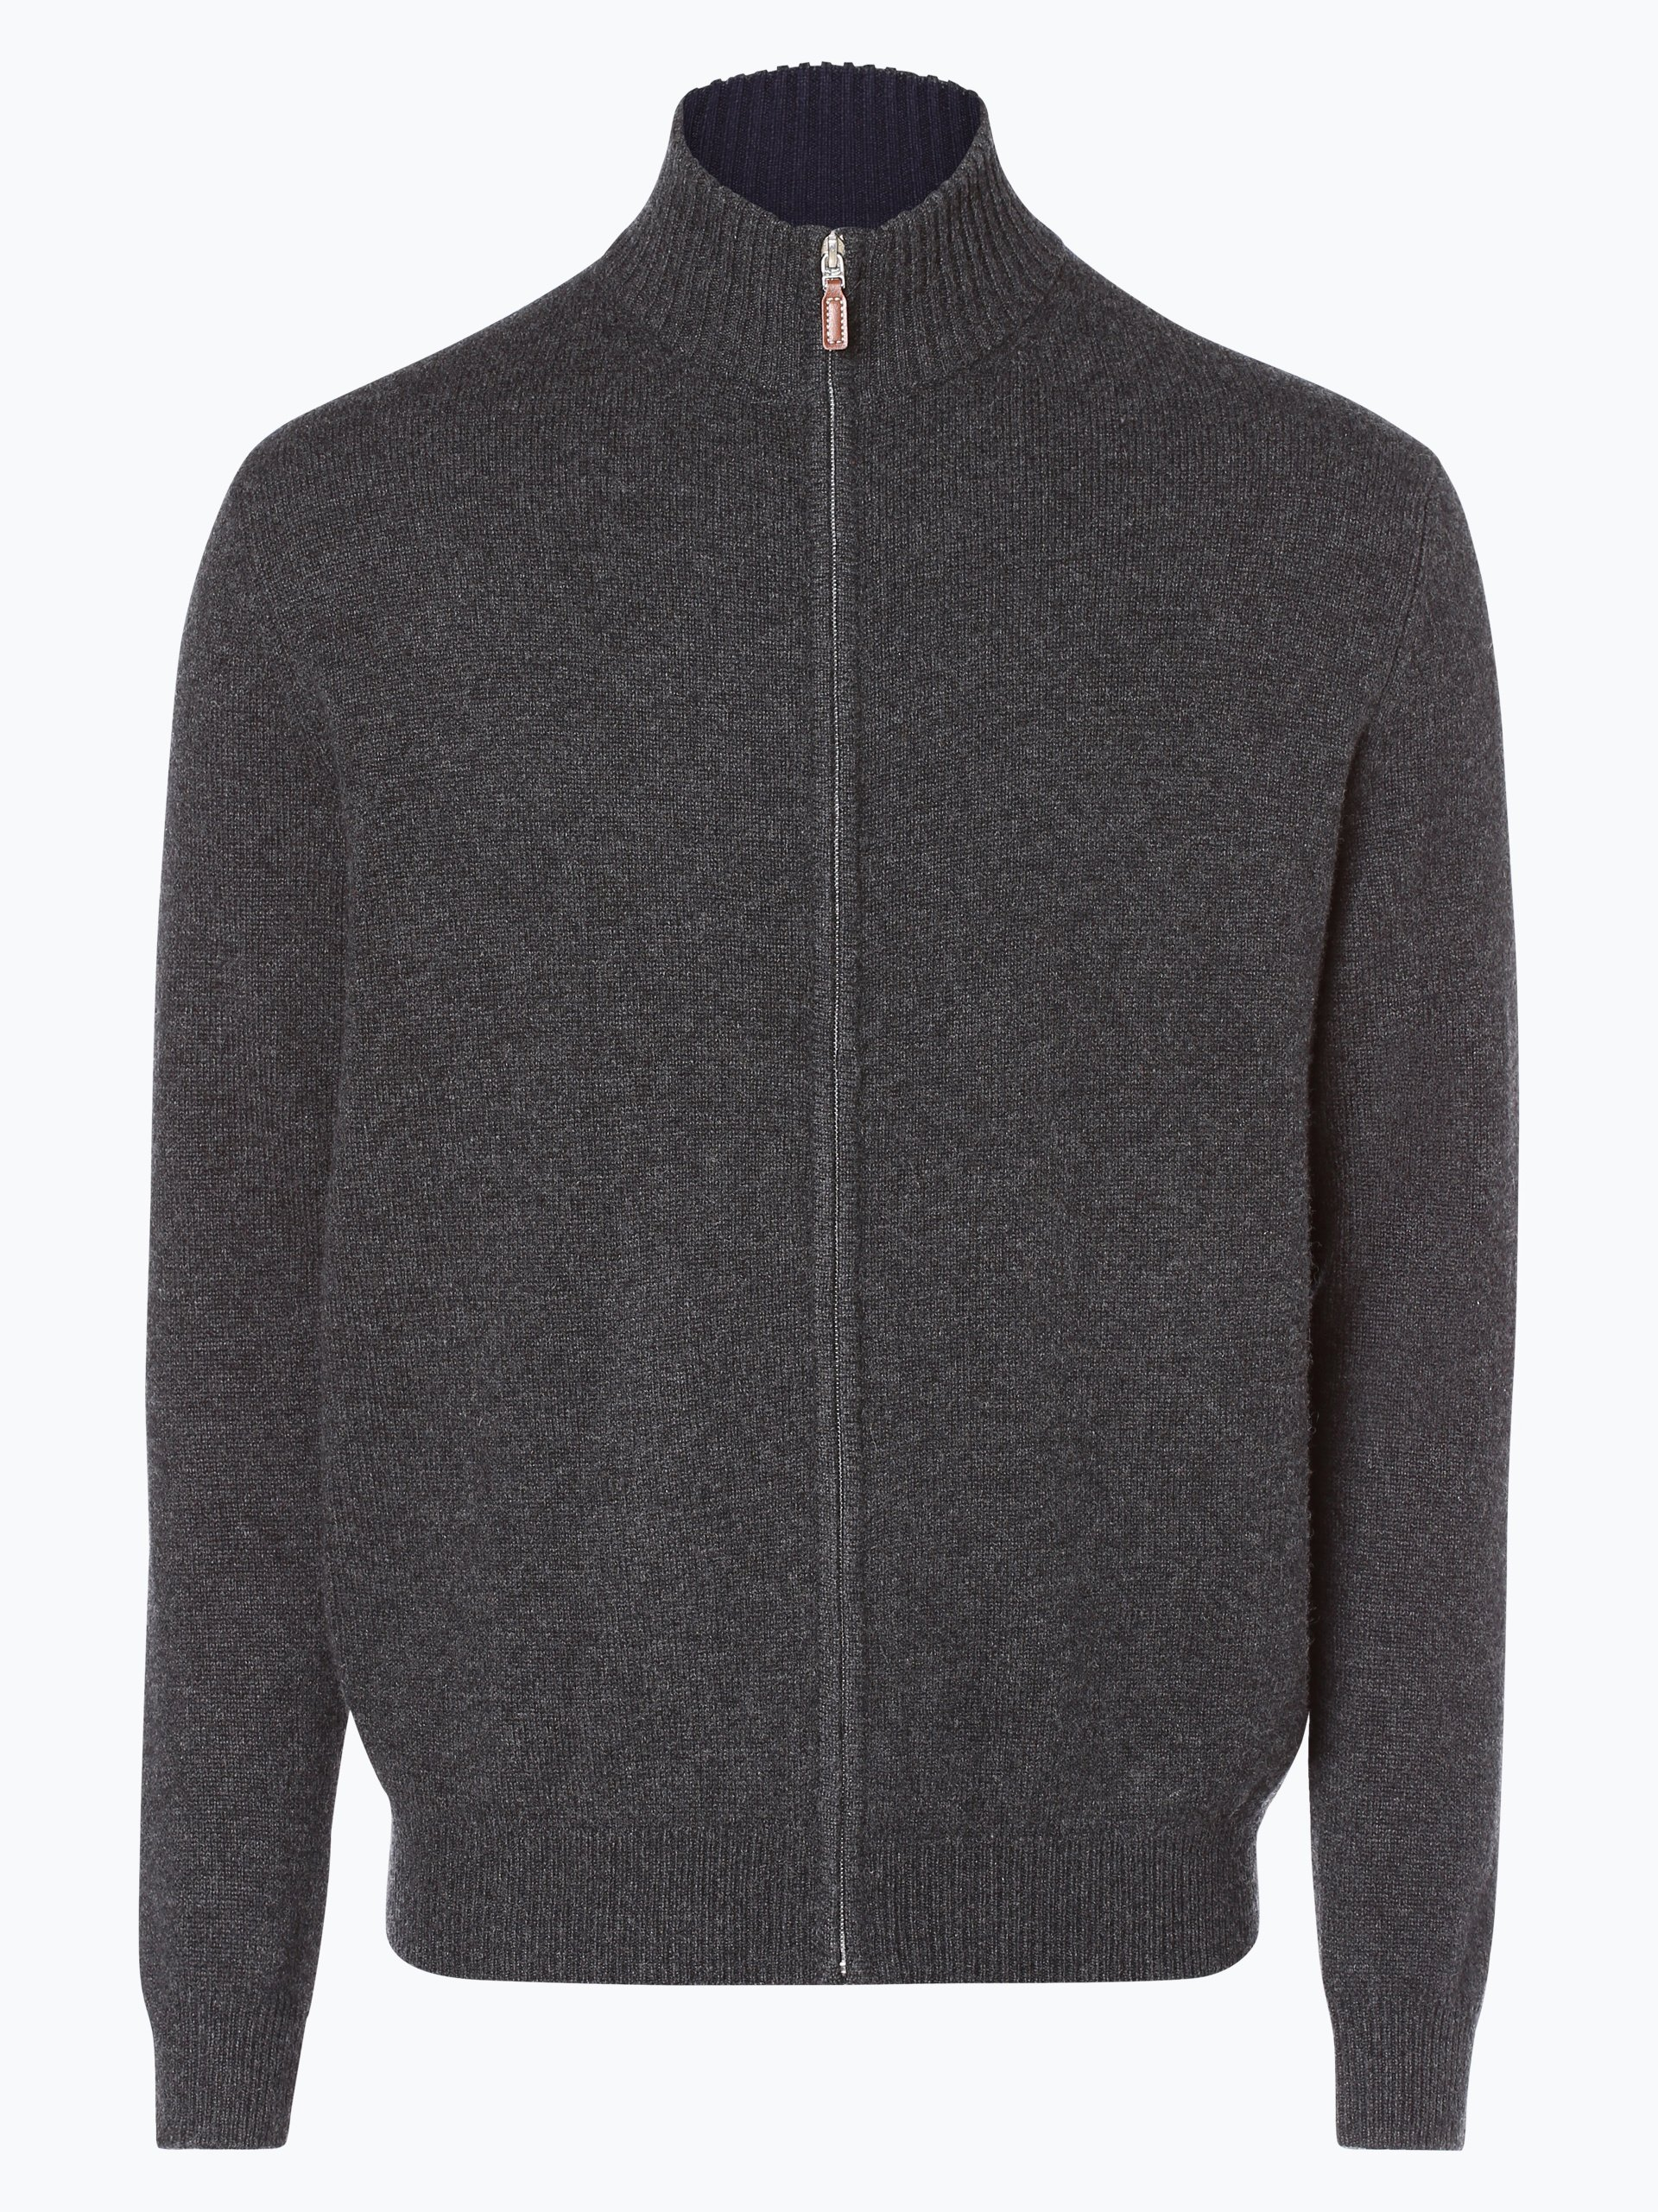 Andrew James Herren Pure Cashmere Strickjacke